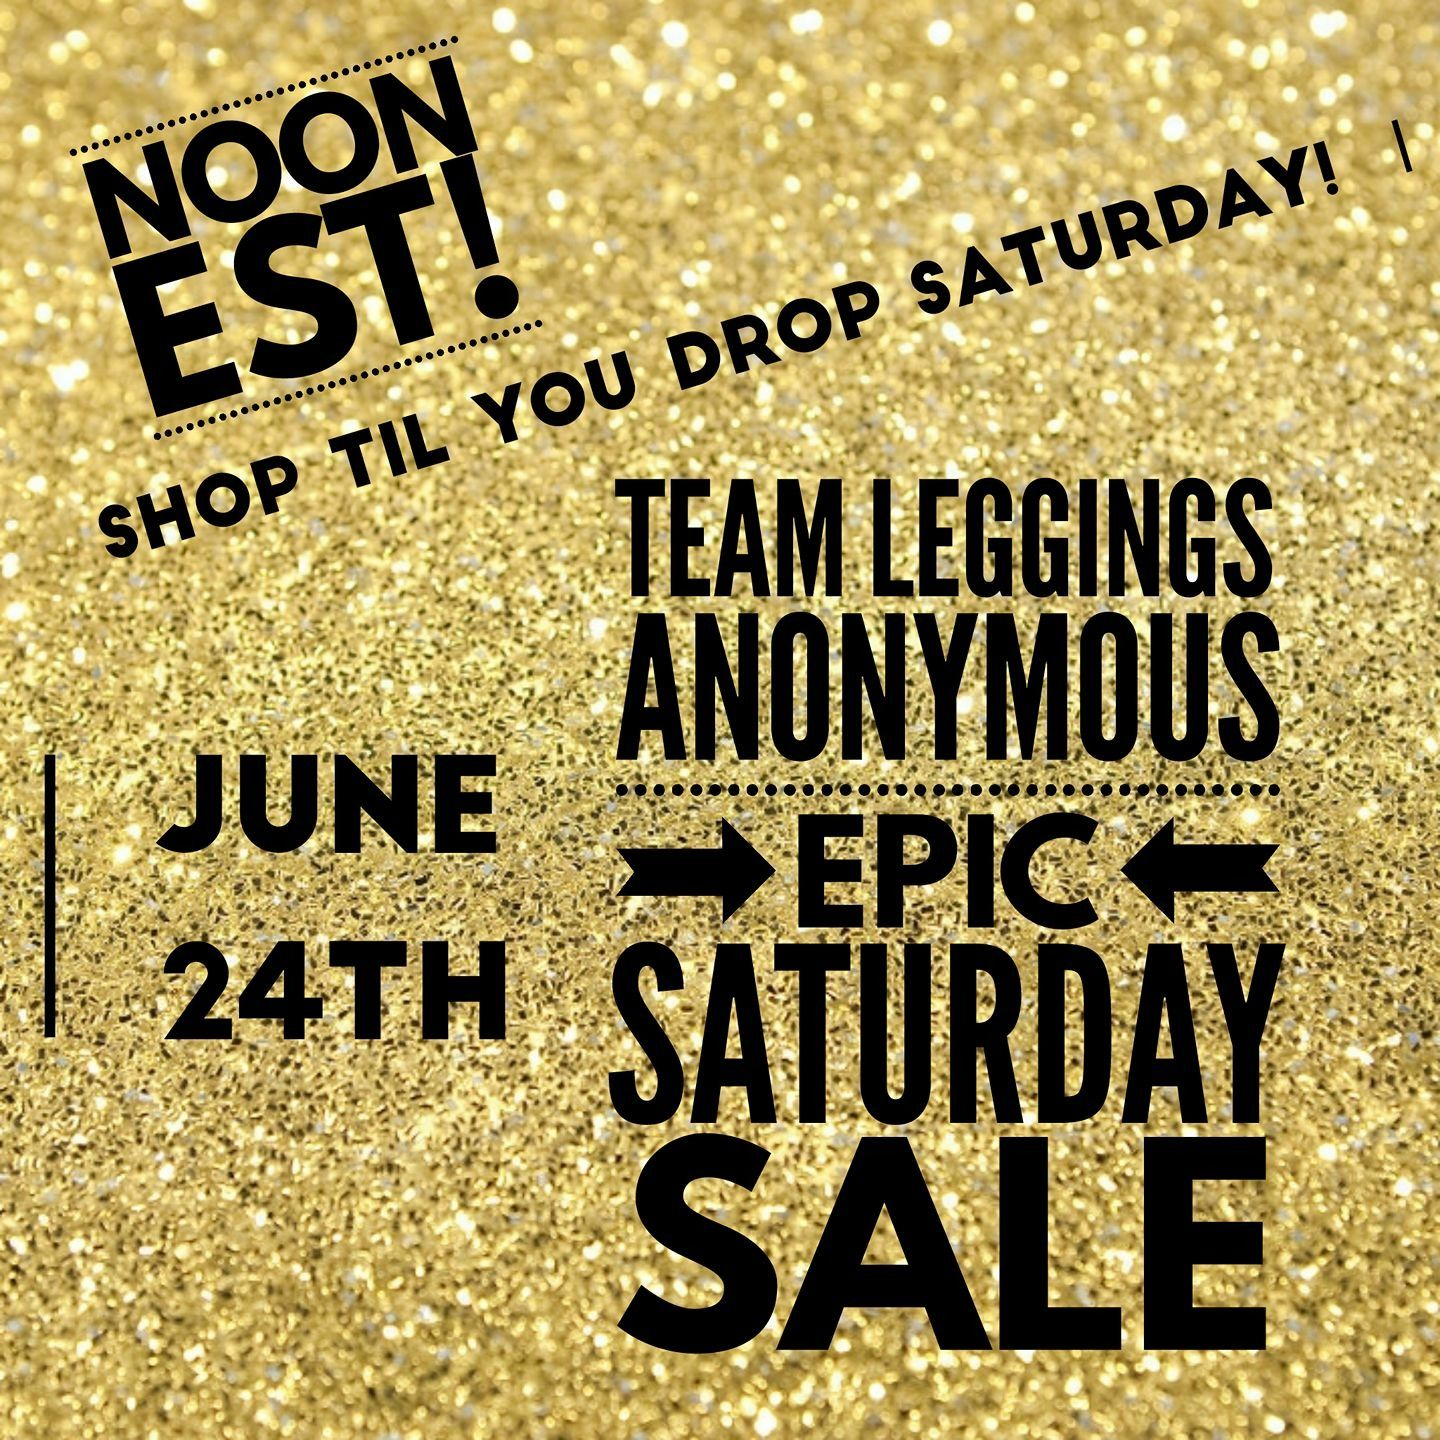 Epic Consultant Hello Lularoe Friendscome Join Us This Saturday June 24Th For An